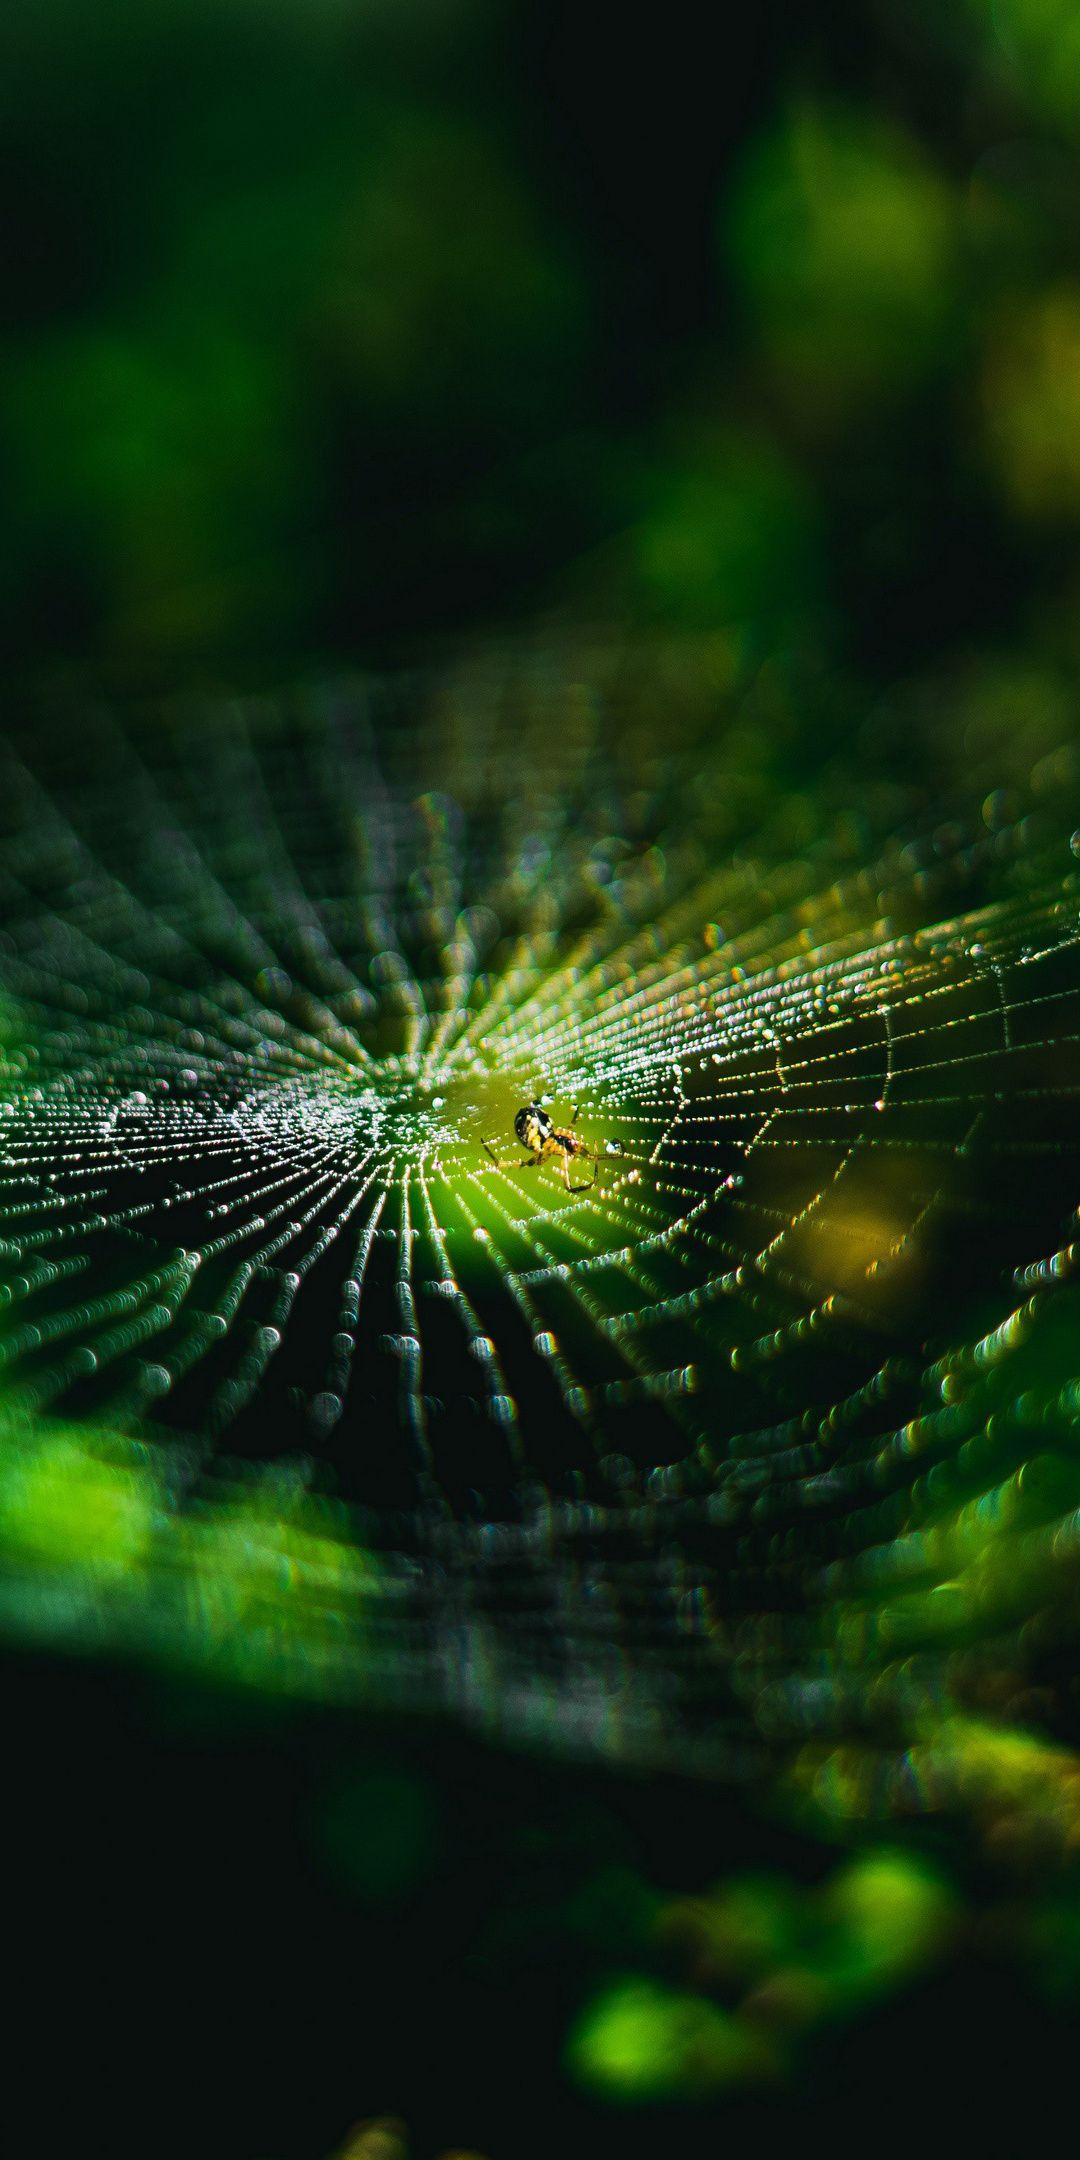 1080x2160 Spider Web Nature Insect Macro Wallpaper Spider Web Wallpaper Iphone Wallpaper